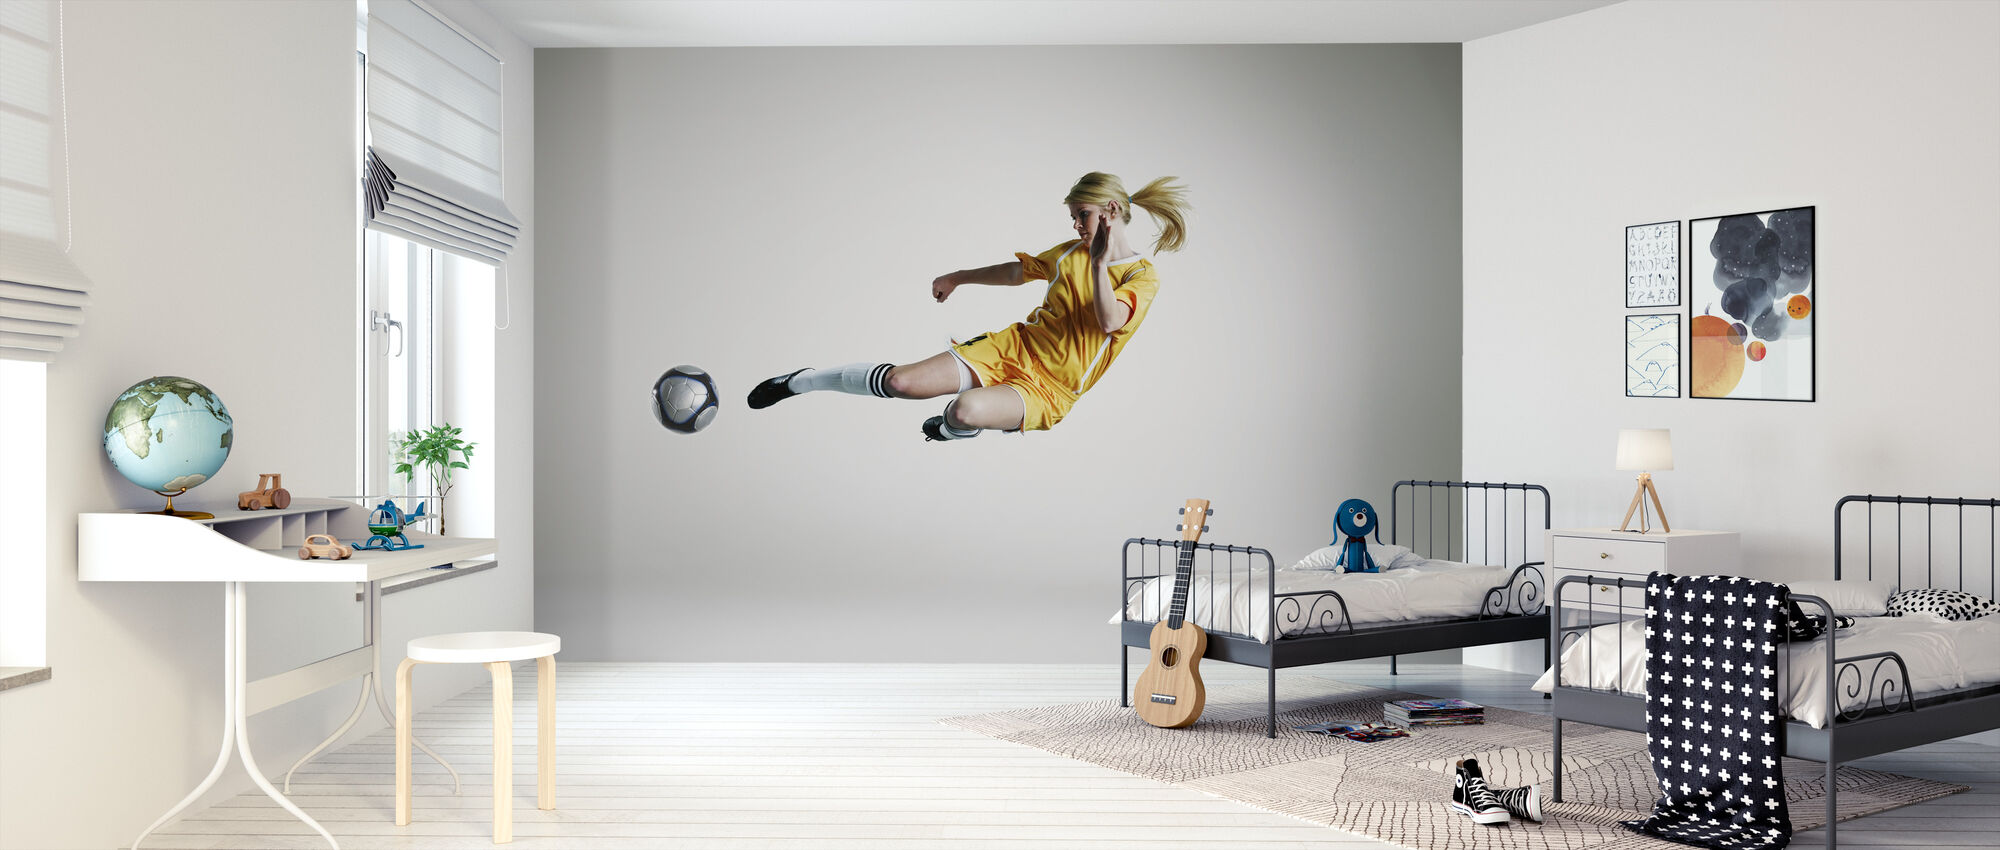 Skilled Player - Wallpaper - Kids Room